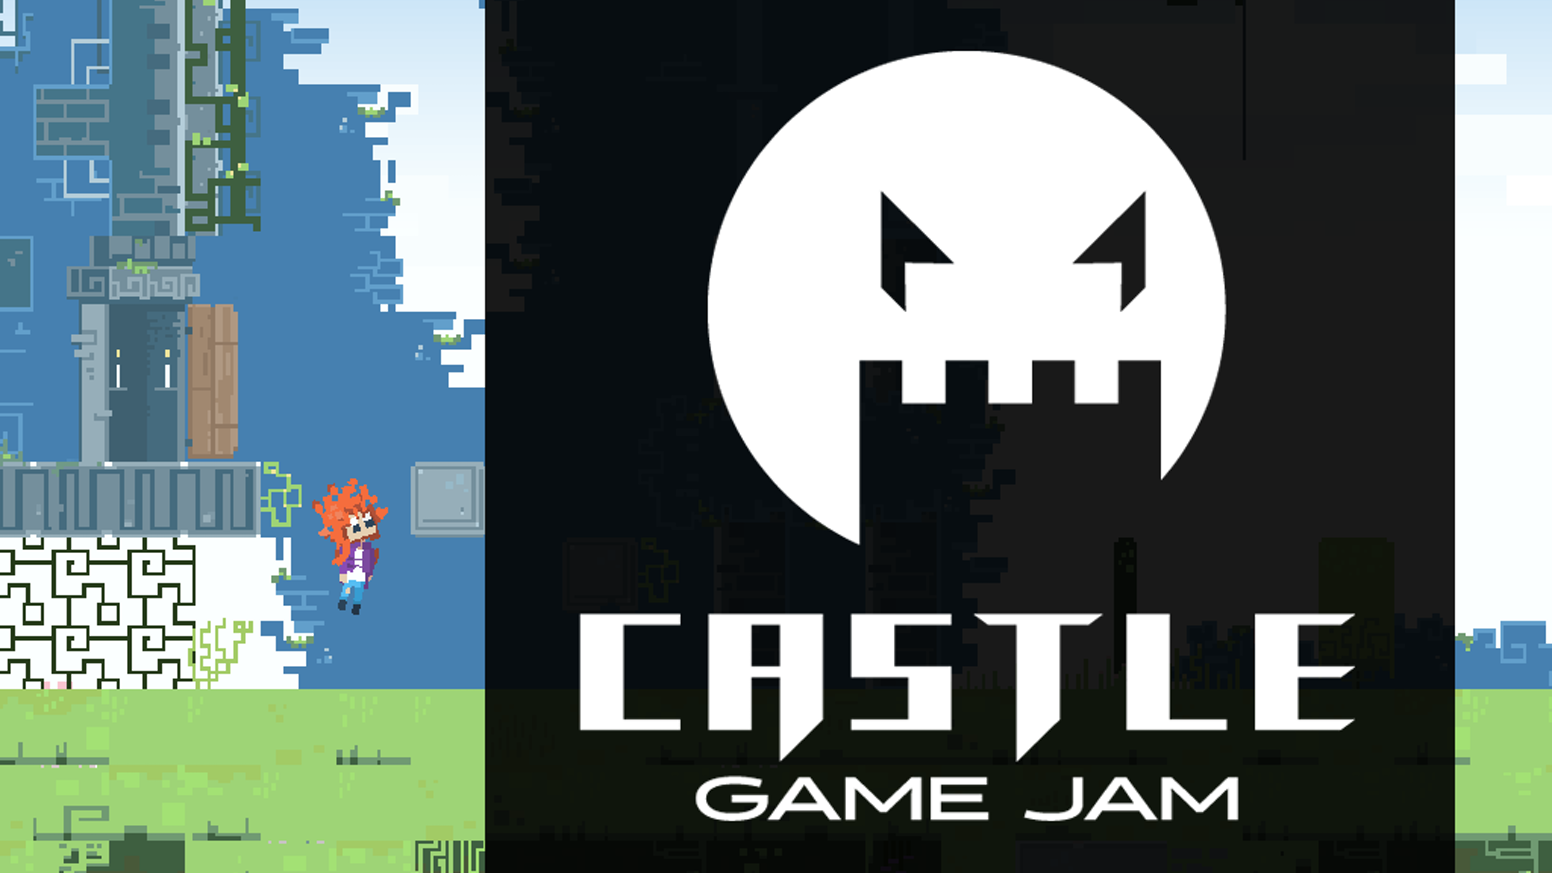 Castle Game Jam 2016 By Newnorth Technology